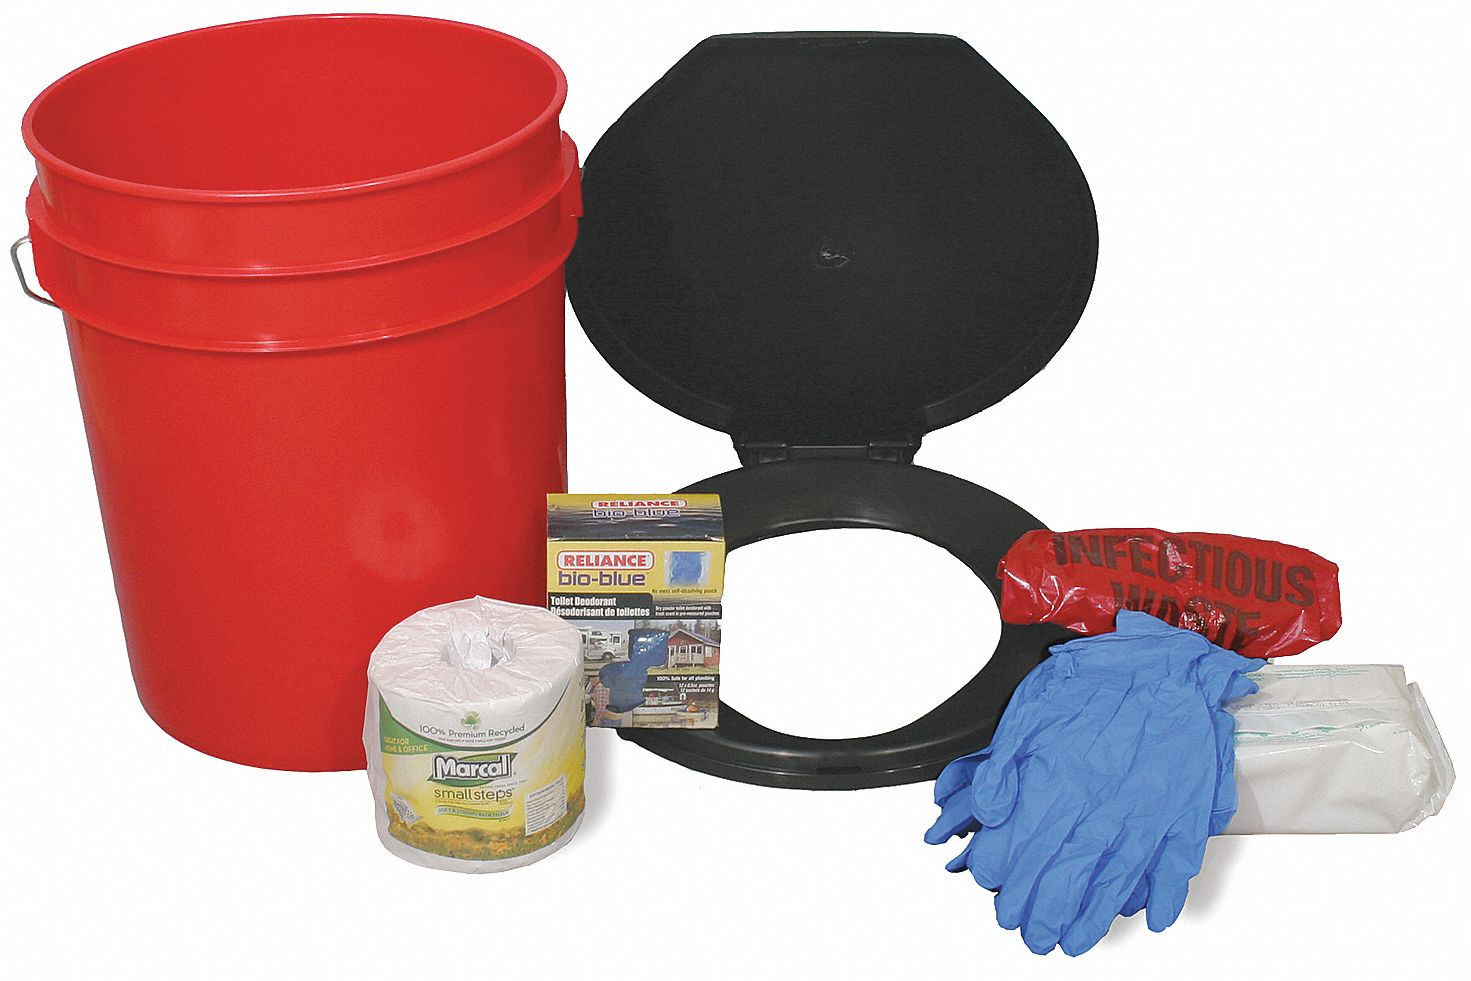 Emergency Toilet Kit,  Number of Components 13,  People Served 4,  Red/Black,  15 in Height